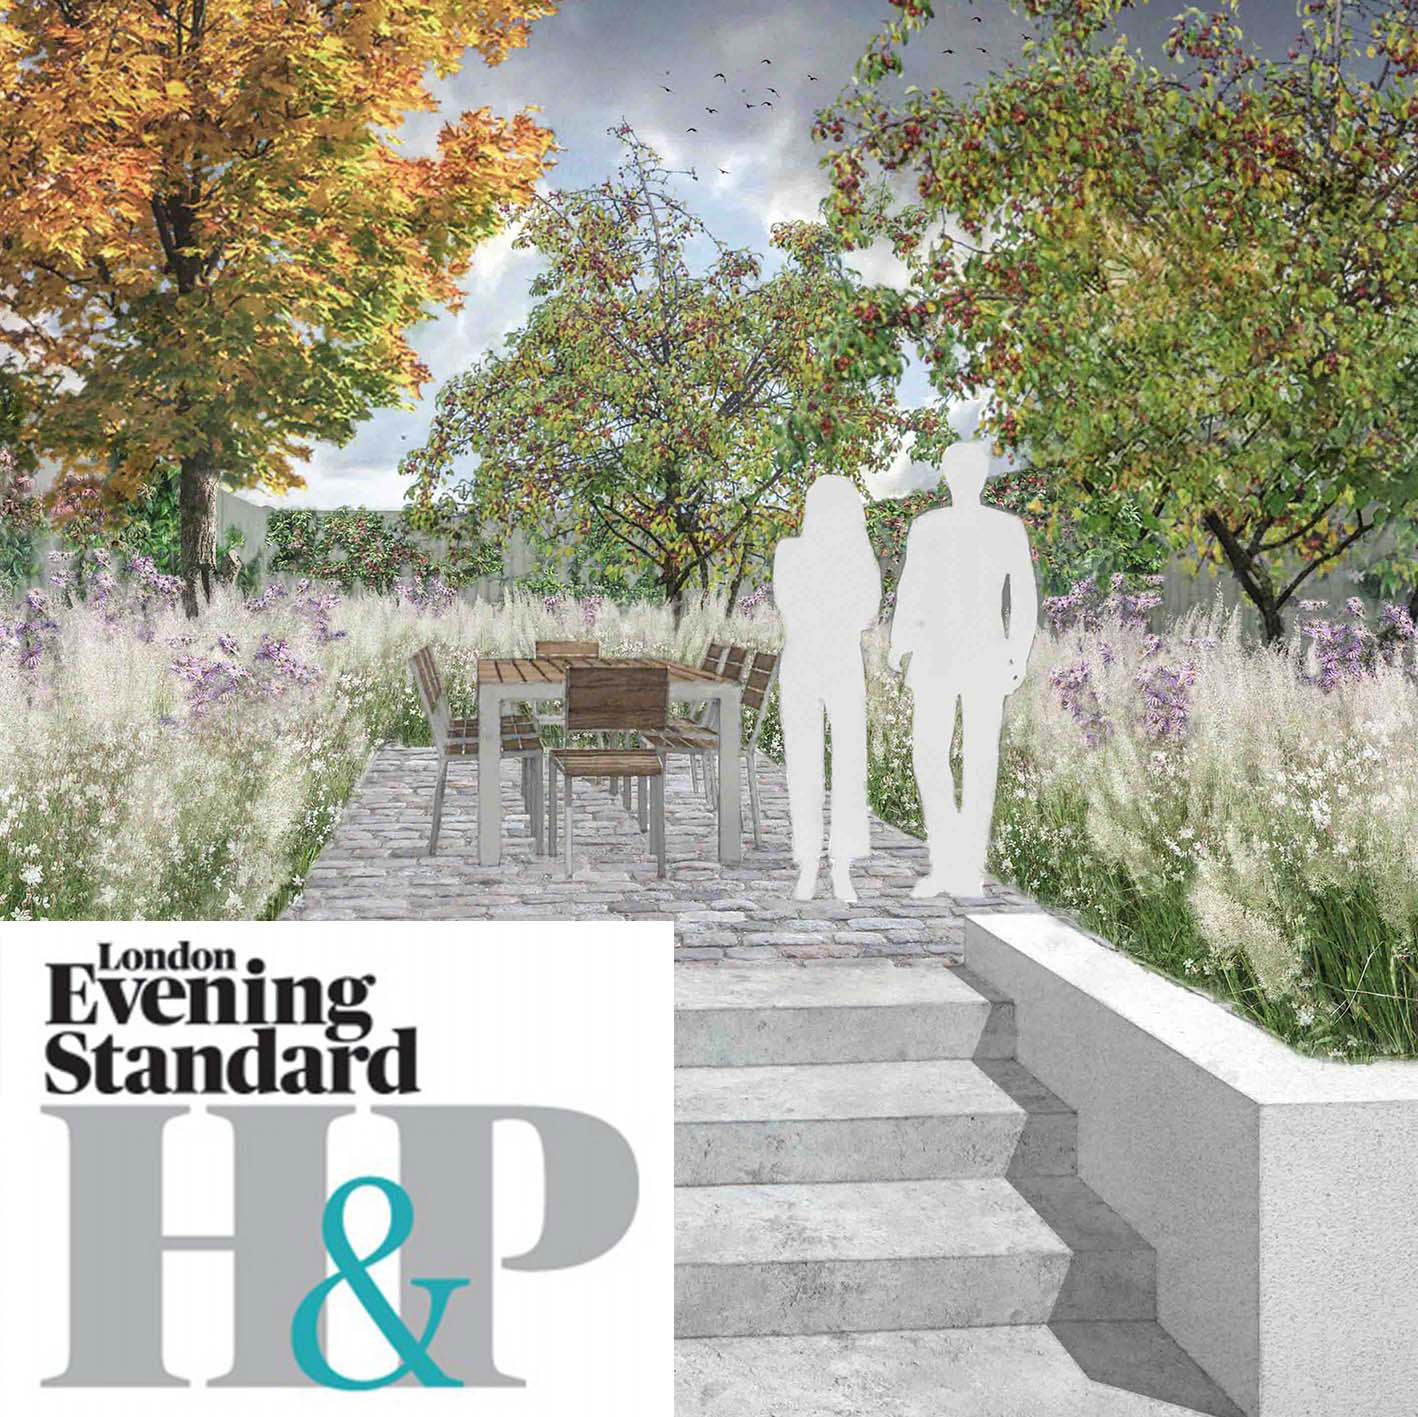 Colm Joseph Gardens - Evening Standard low maintenance planting design ideas for small garden